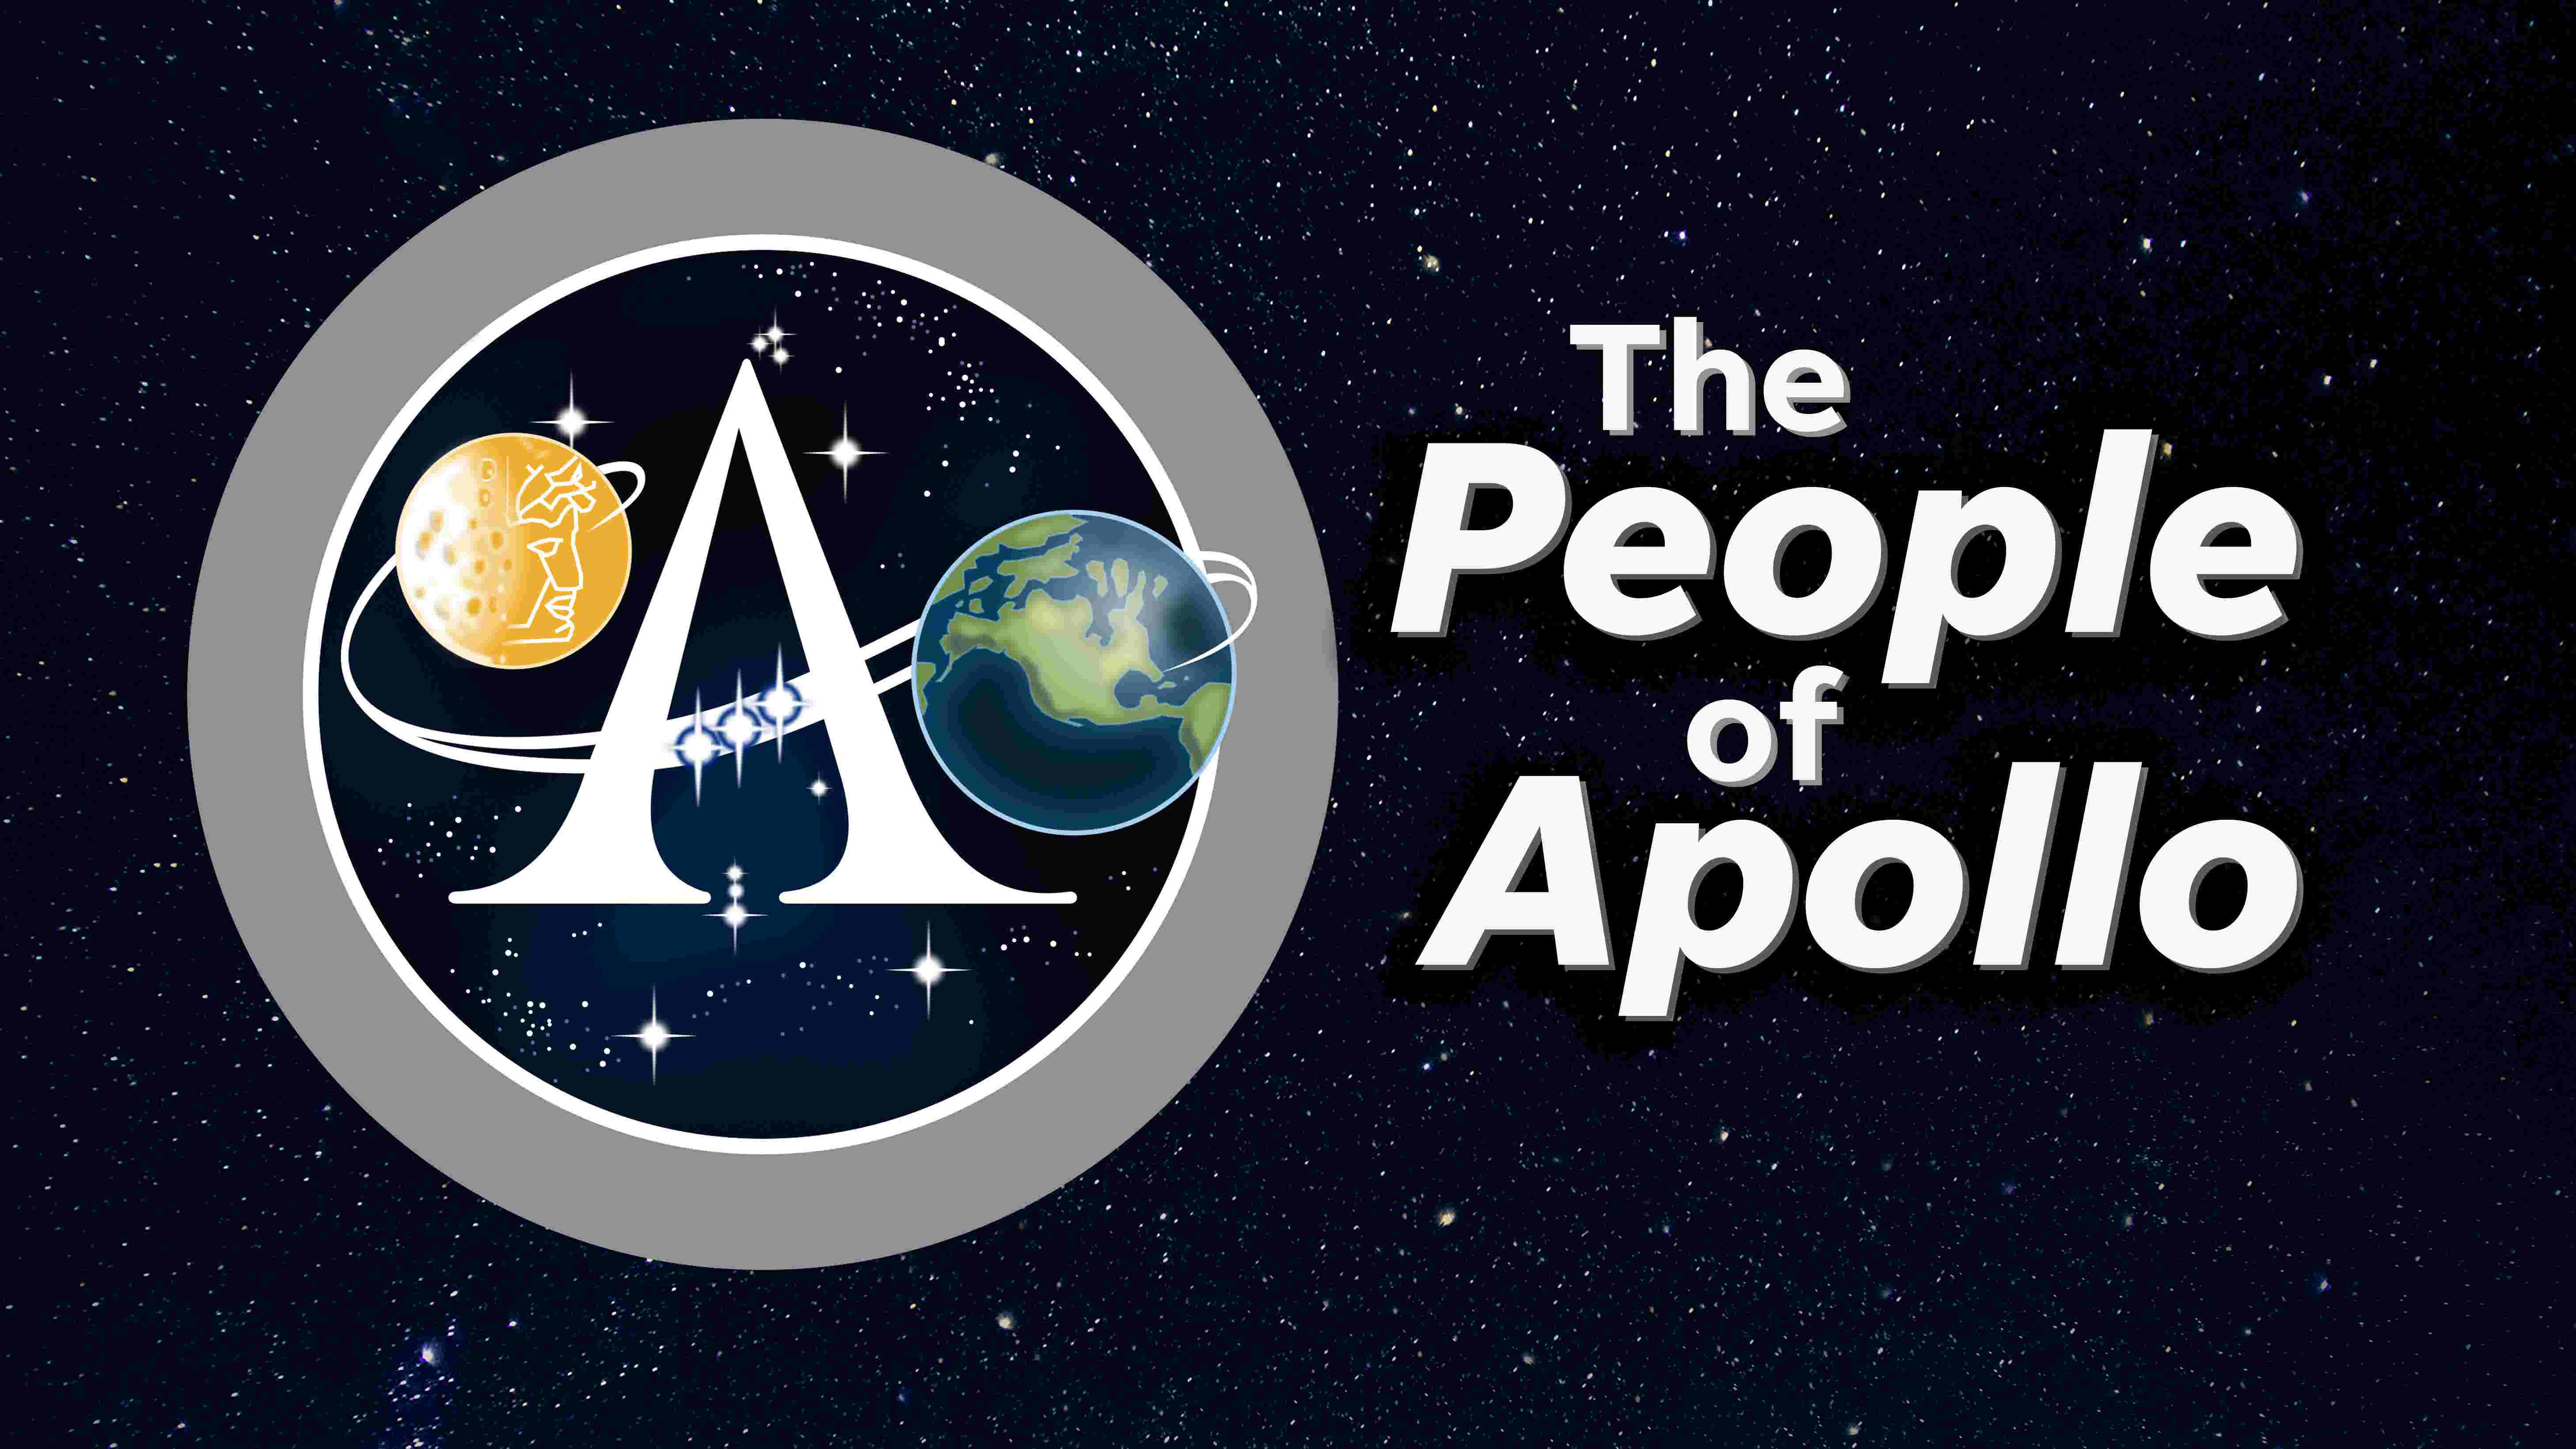 A national effort: Apollo 11 moon landing was made possible by 400,000 workers